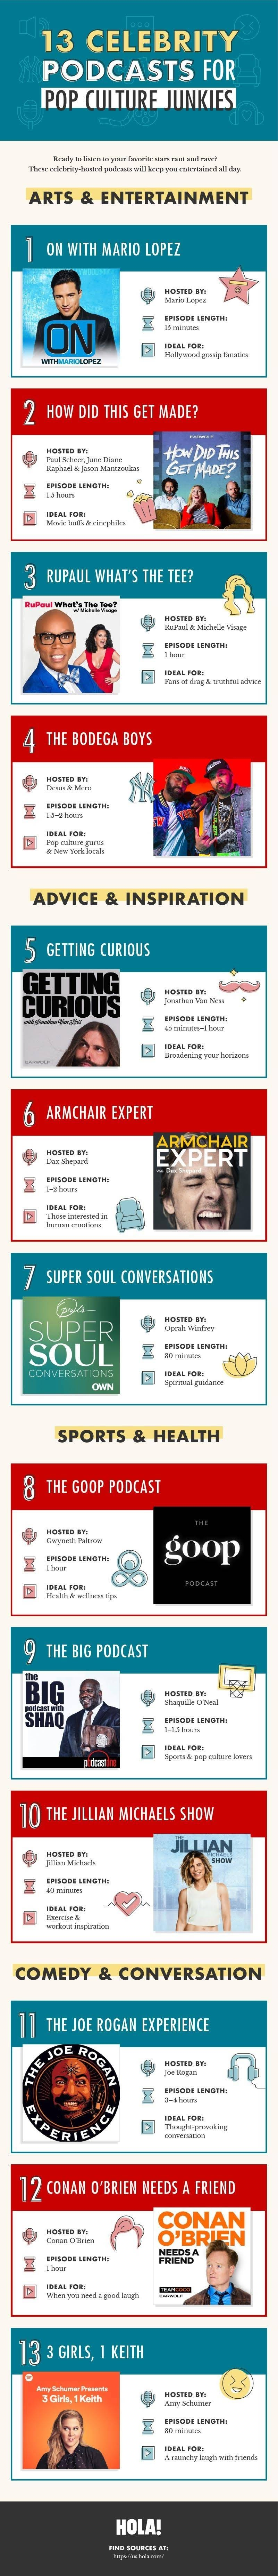 13 CELEBRITY PODCASTS FOR POP CULTURE JUNKIES #INFOGRAPHIC